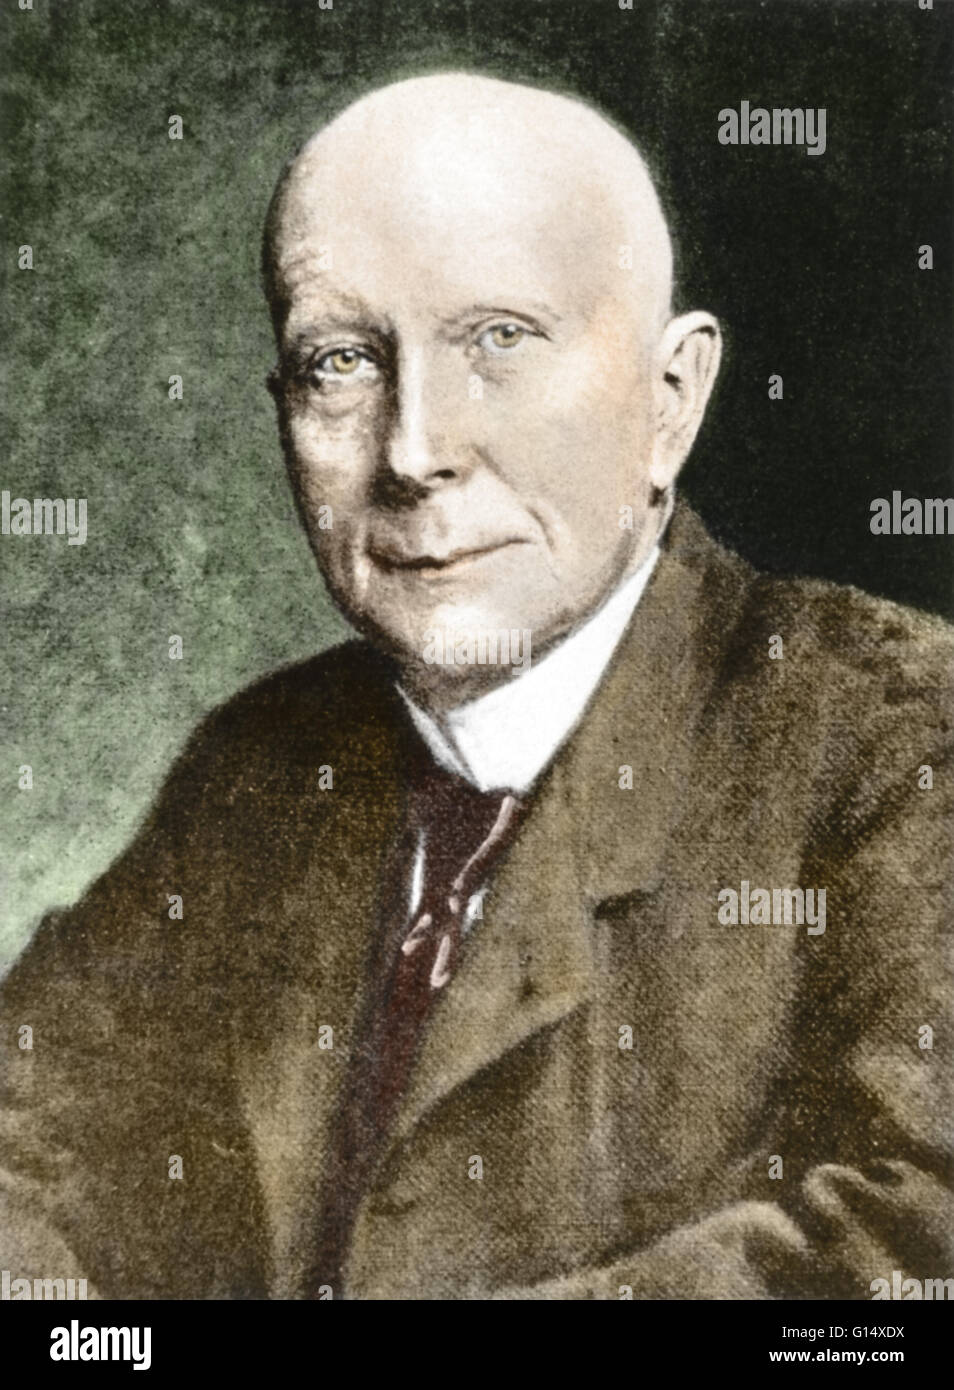 John Davison Rockefeller (July 8, 1839 - May 23, 1937) was an American industrialist and philanthropist. He founded - Stock Image